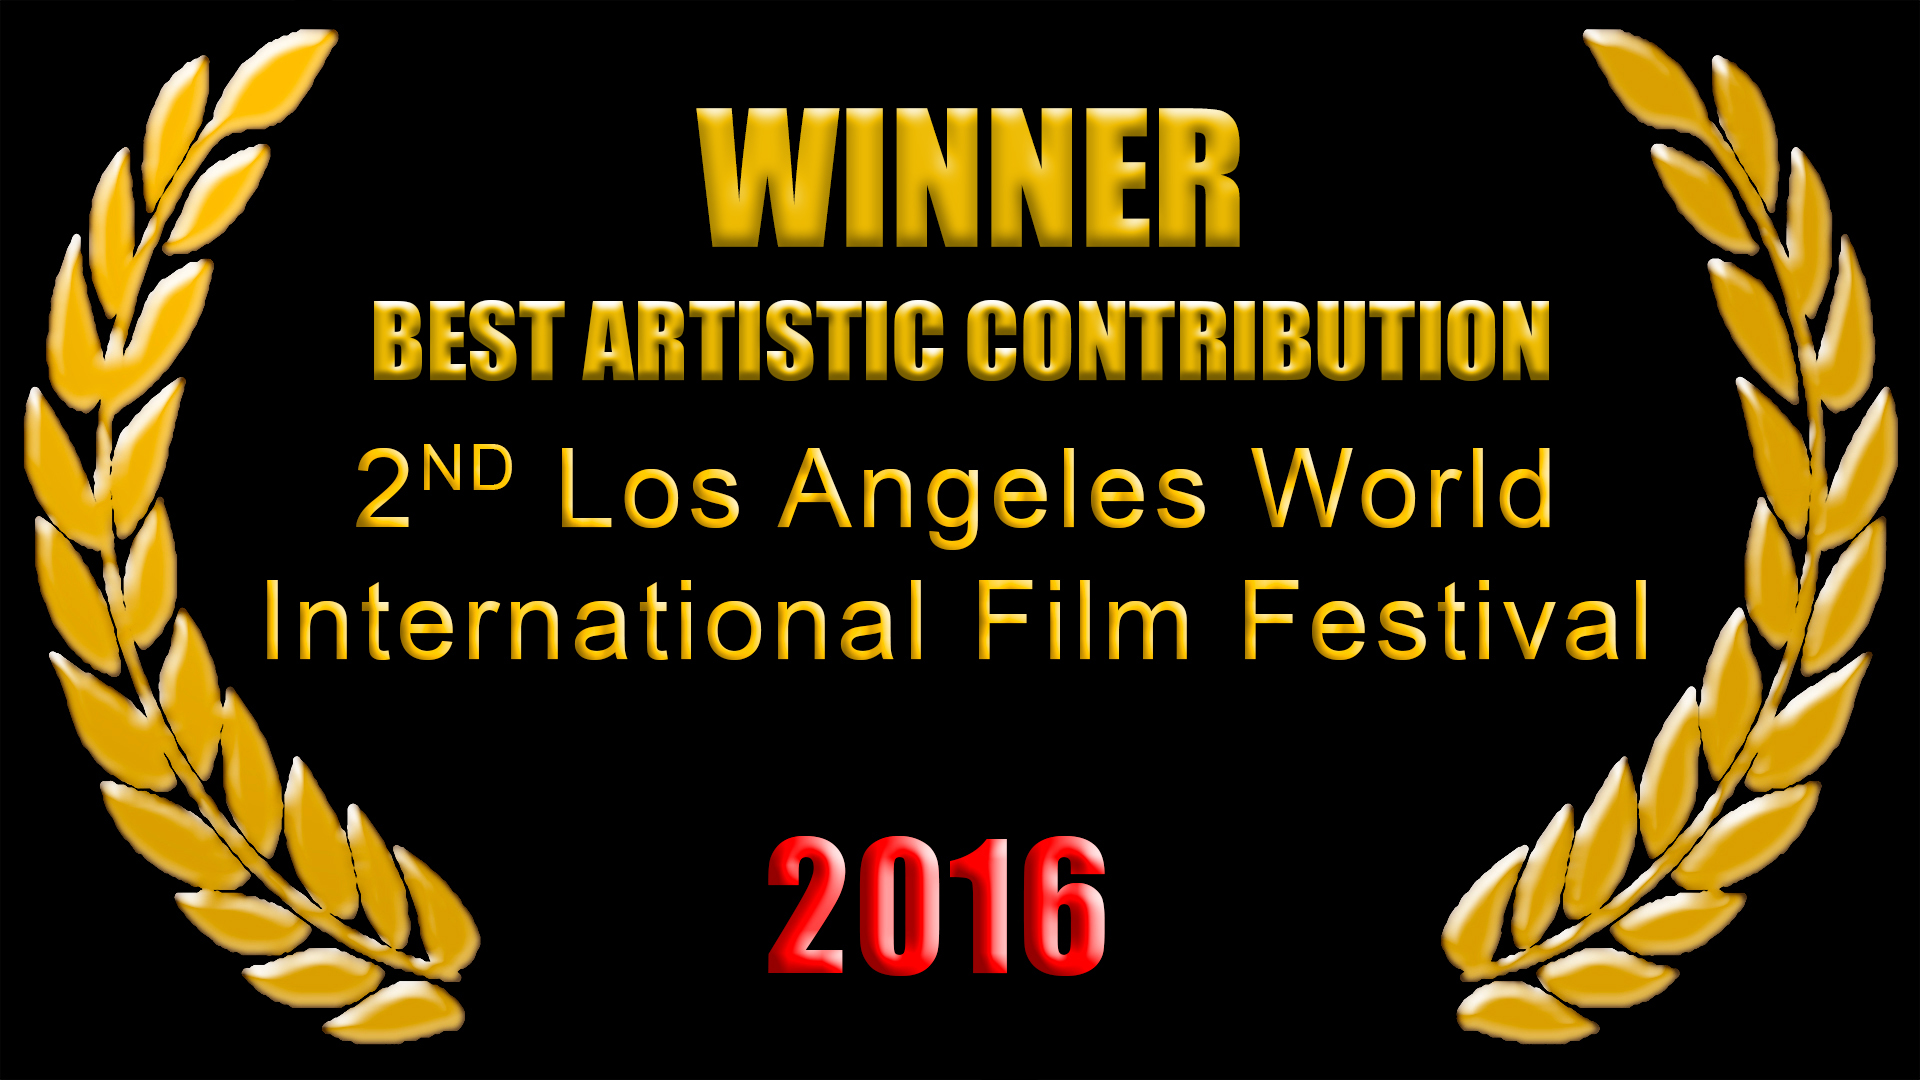 Los Angeles World International Film Festival, 2016